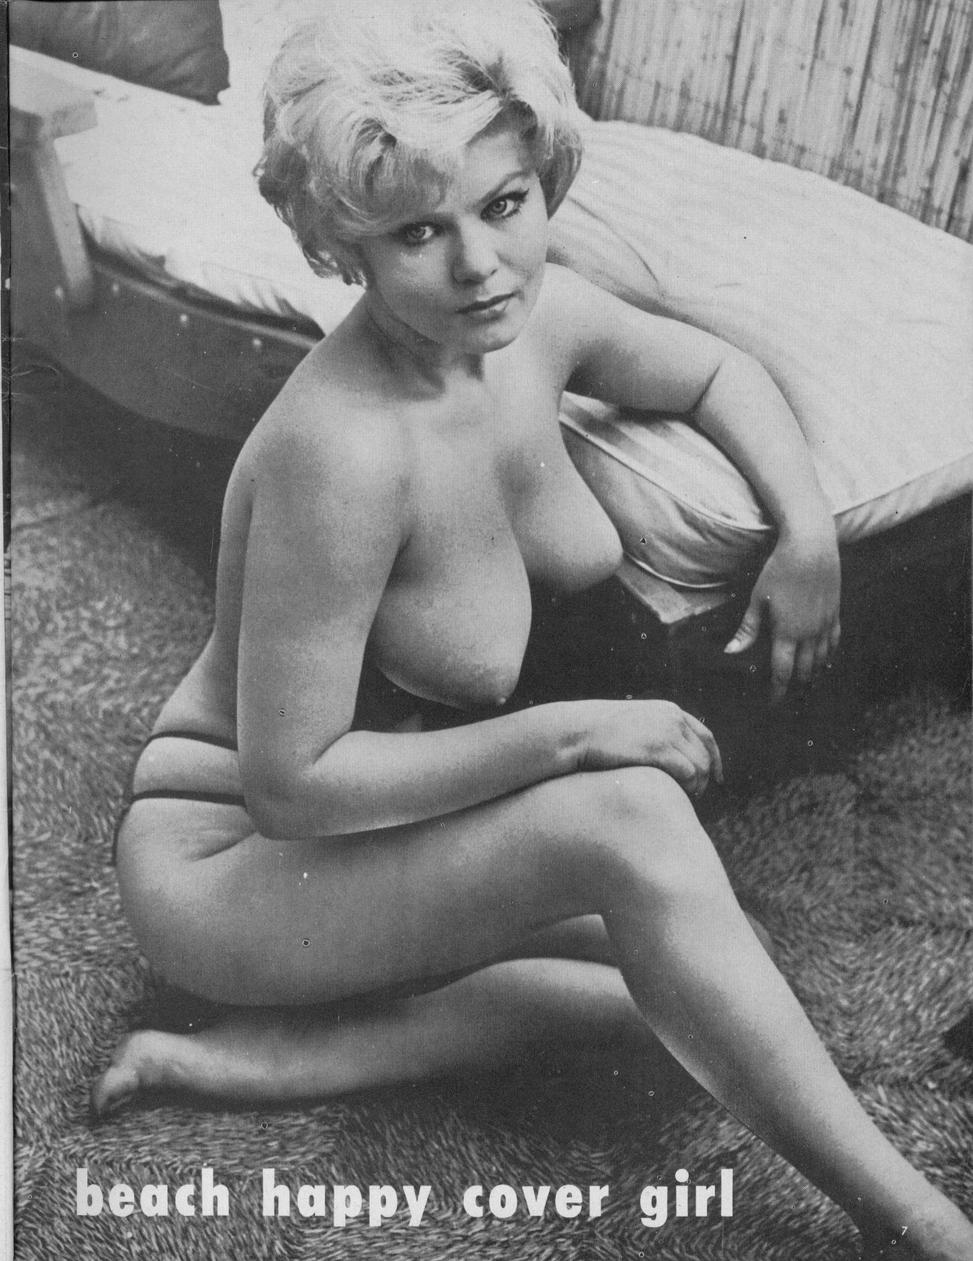 from Ezekiel kim novak sexy pics